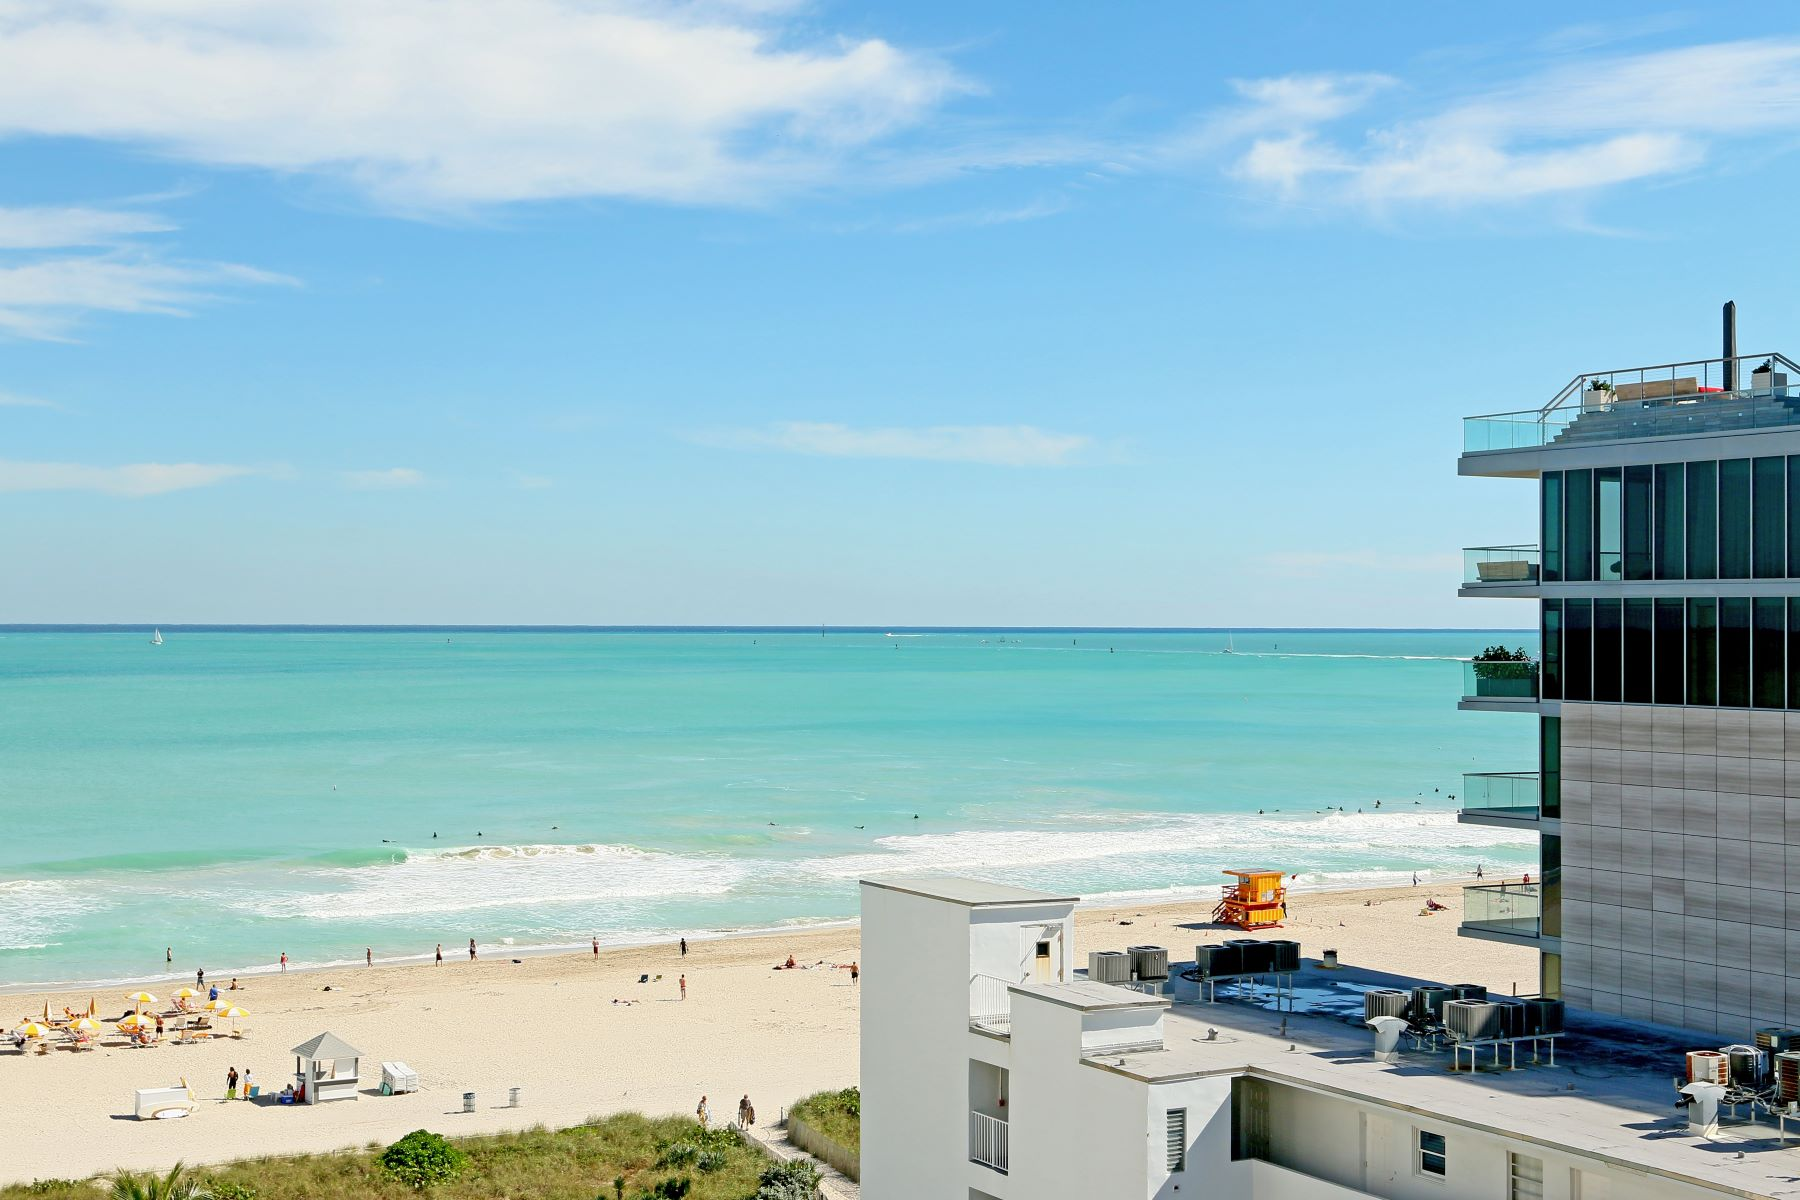 Condominium for Sale at 345 Ocean Dr #1008 345 Ocean Dr 1008 Miami Beach, Florida, 33139 United States